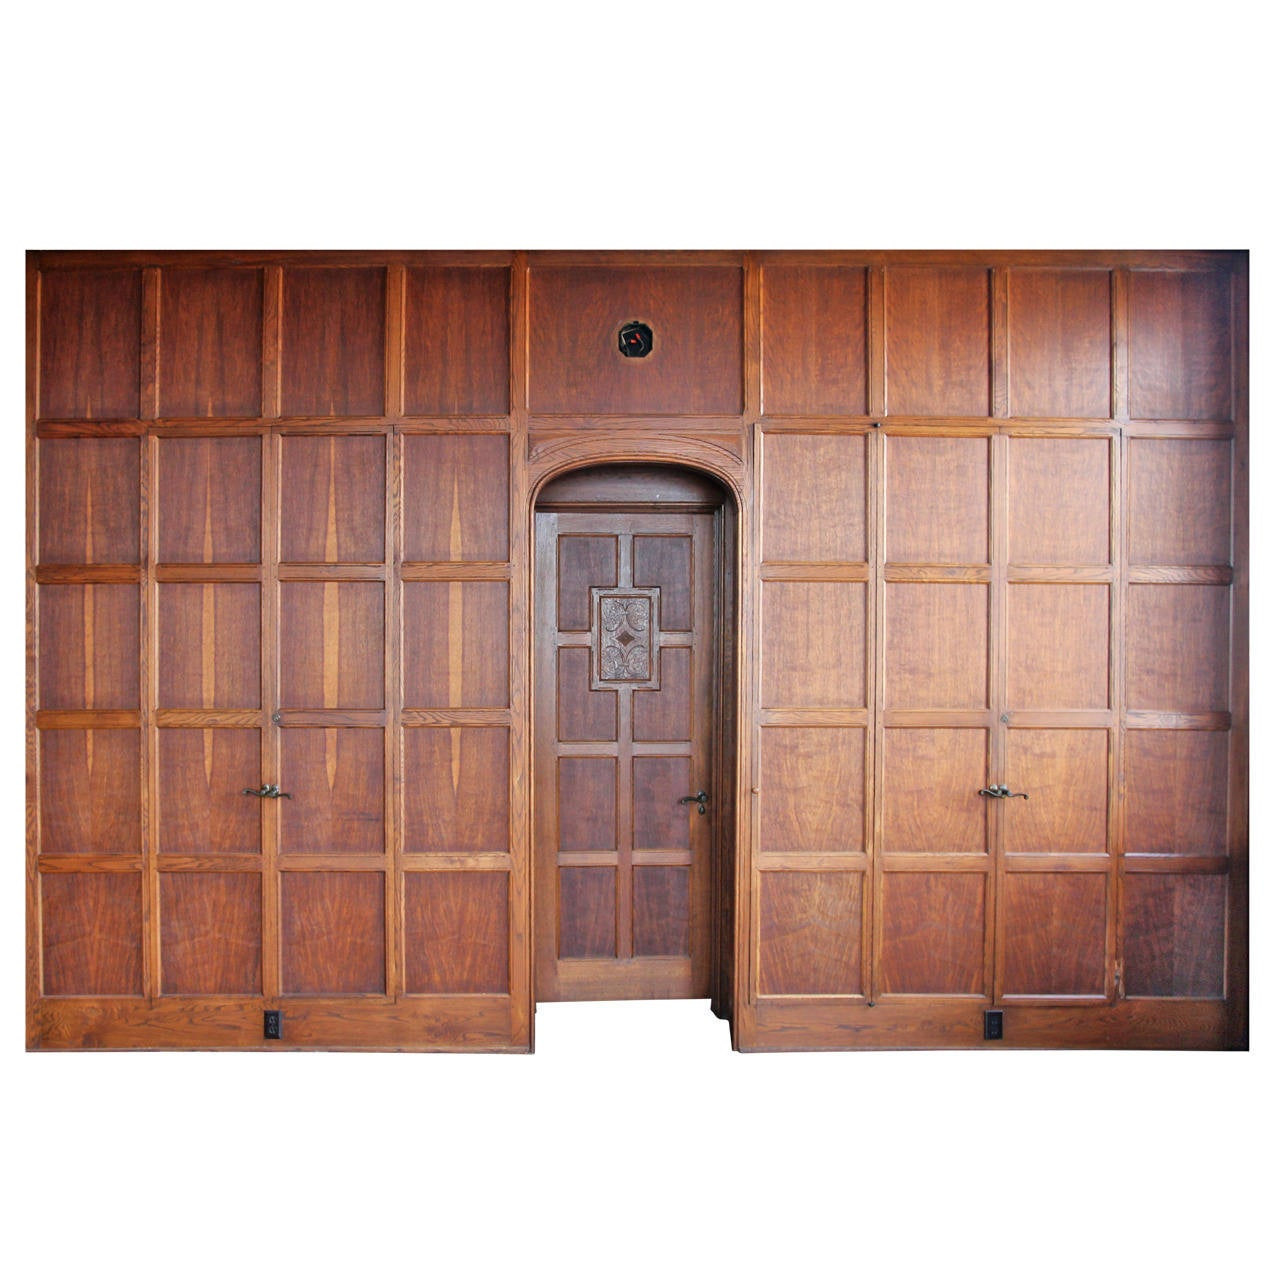 1905 Tudor Style English Oak Paneled Room From Two Rivers Wisconsin For Sale At 1stdibs